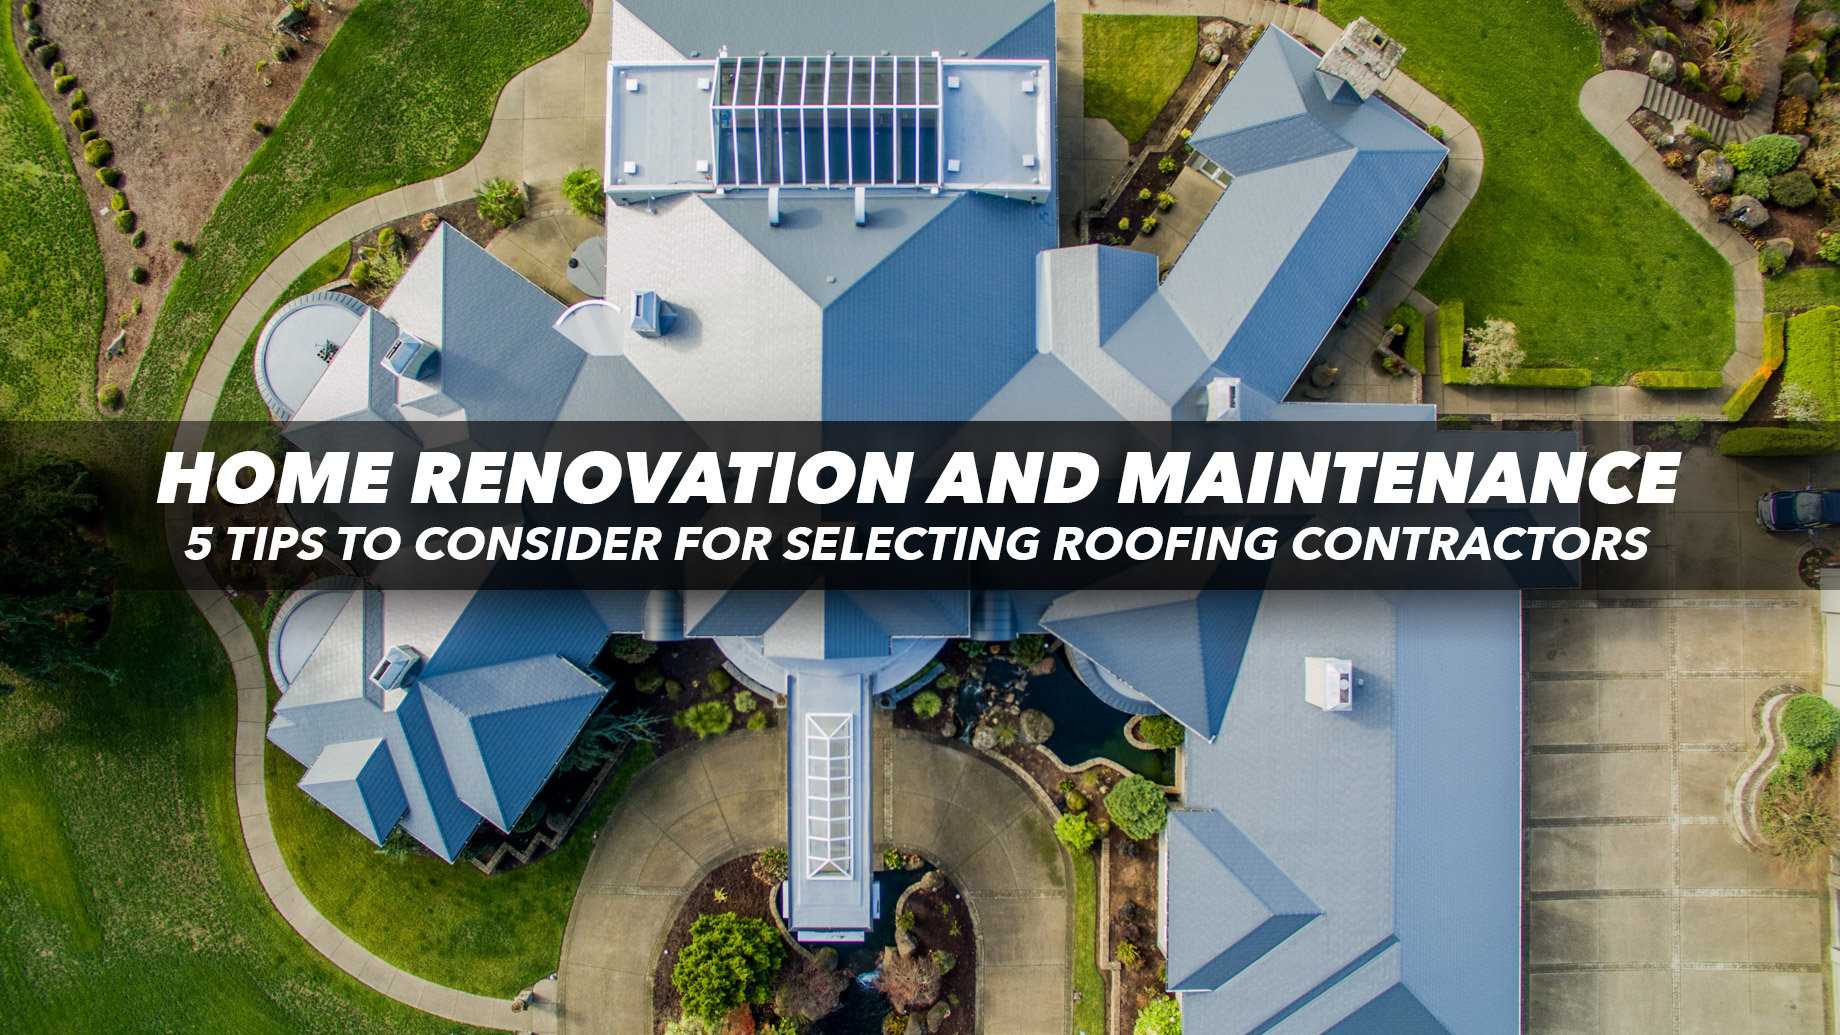 Home Renovation and Maintenance - 5 Tips To Consider For Selecting Roofing Contractors